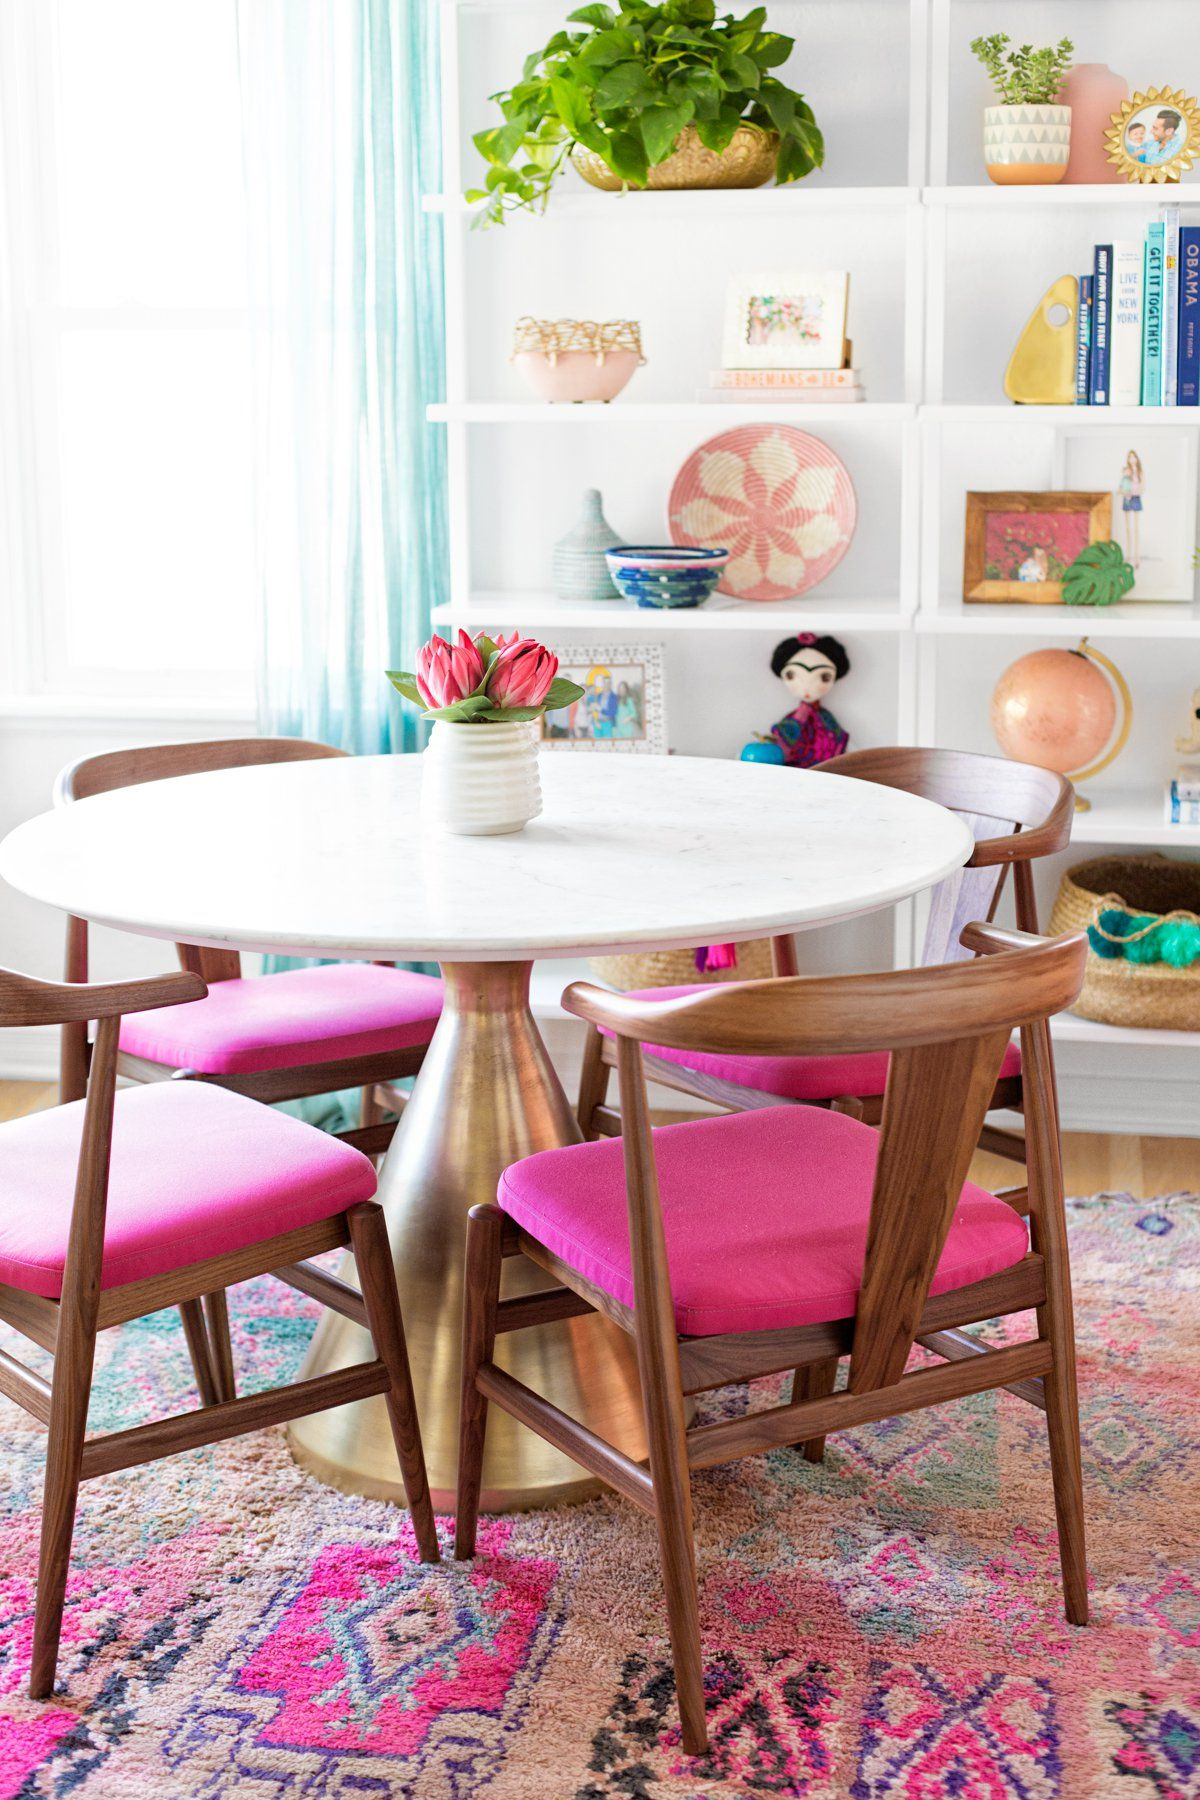 30 Round Dining Tables For Every Budget | Dining room ...